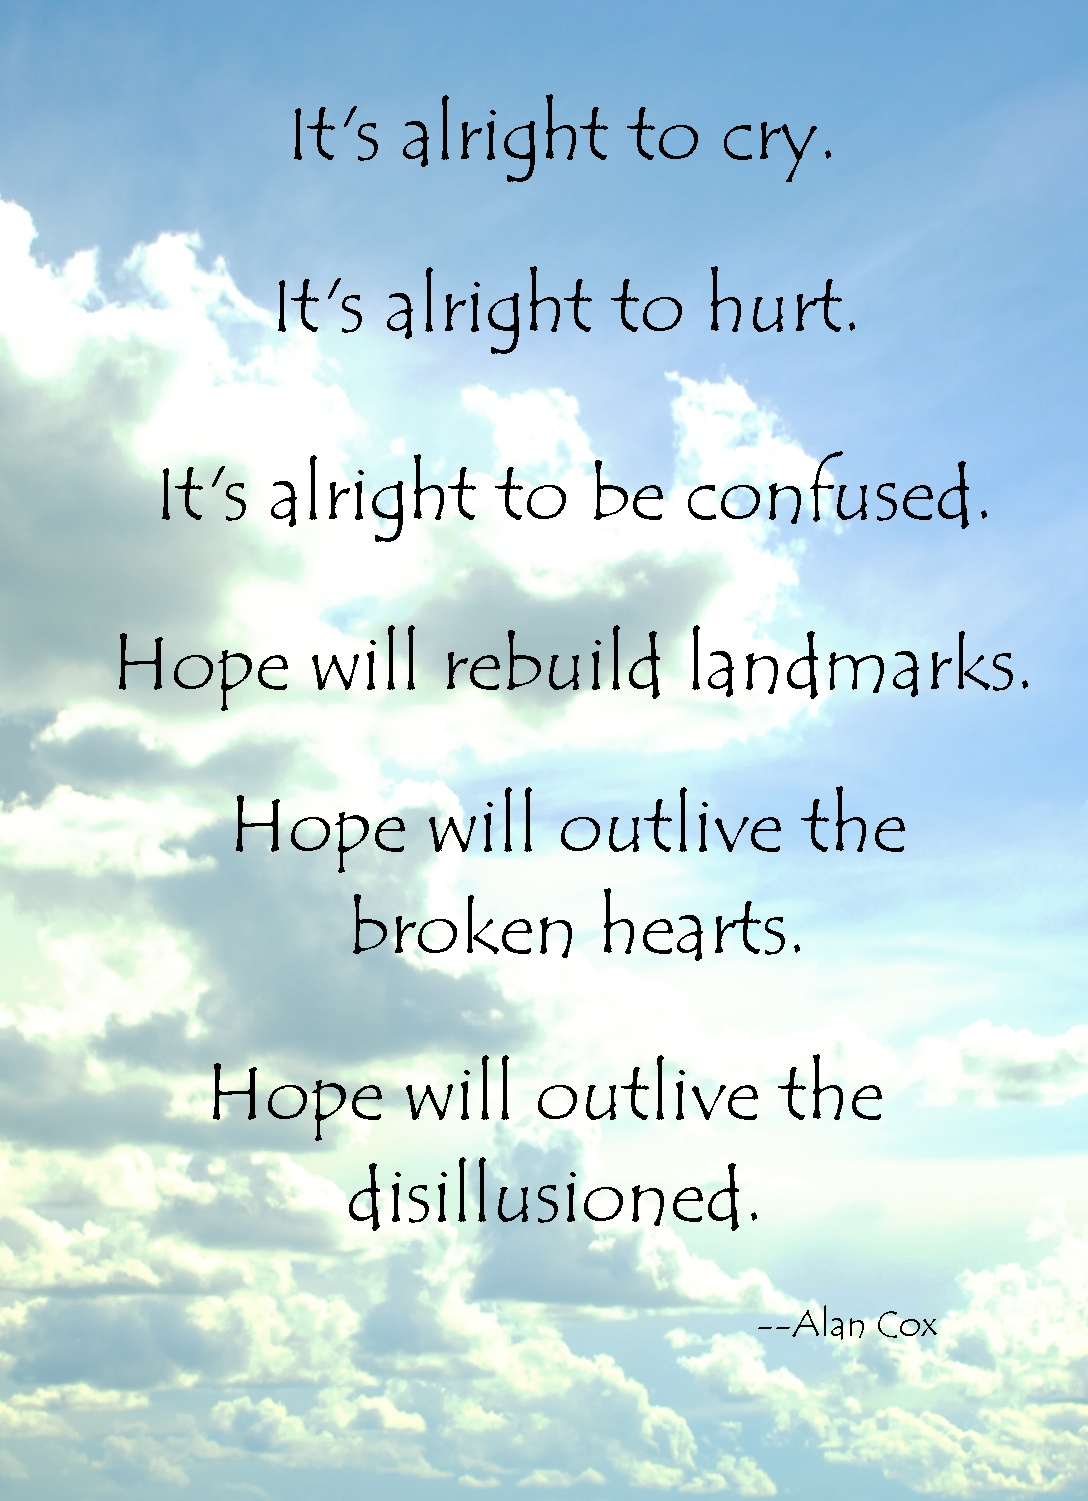 Mourning Quotes Quotes For A Friend Mourning Quotes When Someone Is Grieving